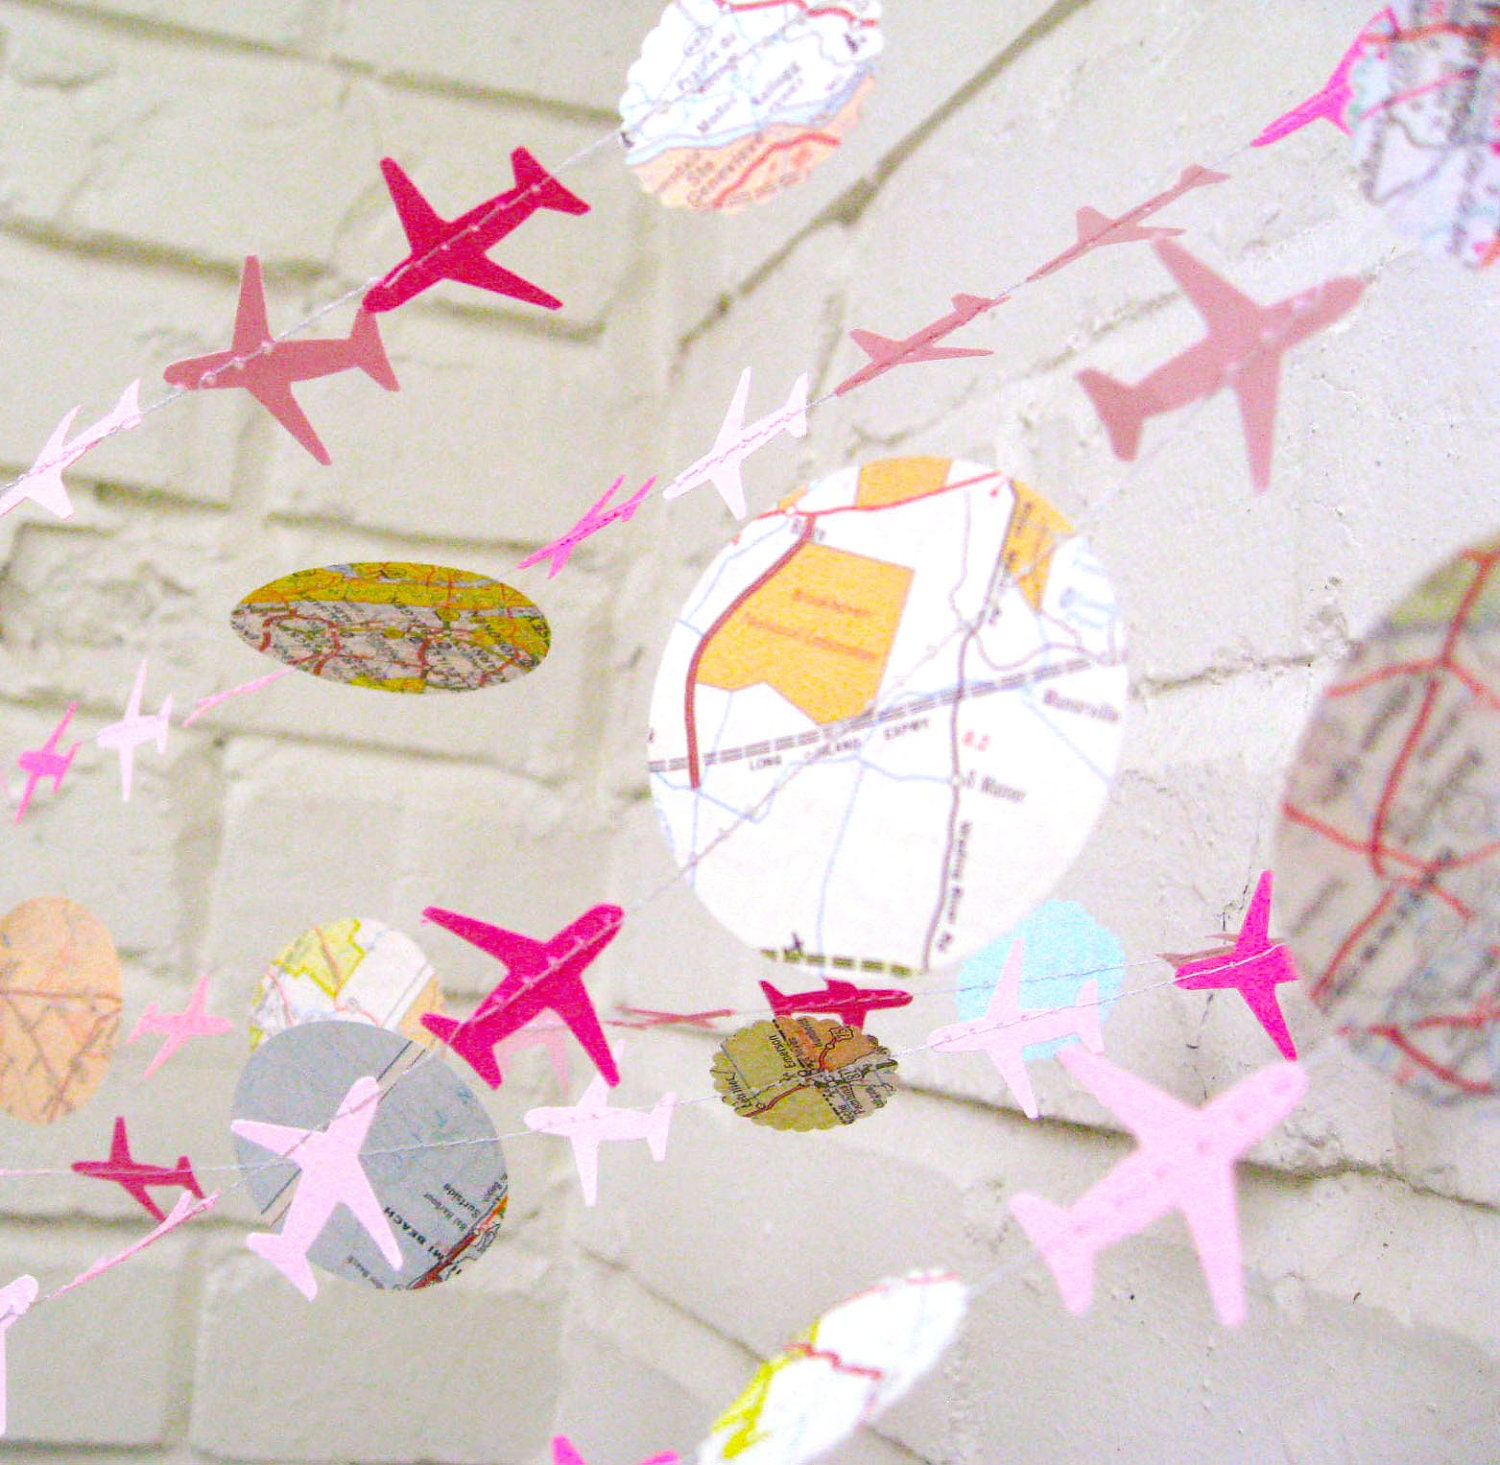 The Bon Voyage Air Plane Garland, Paper Garland, Pink, Maps, Ombre Pink, Multi colored, Maps